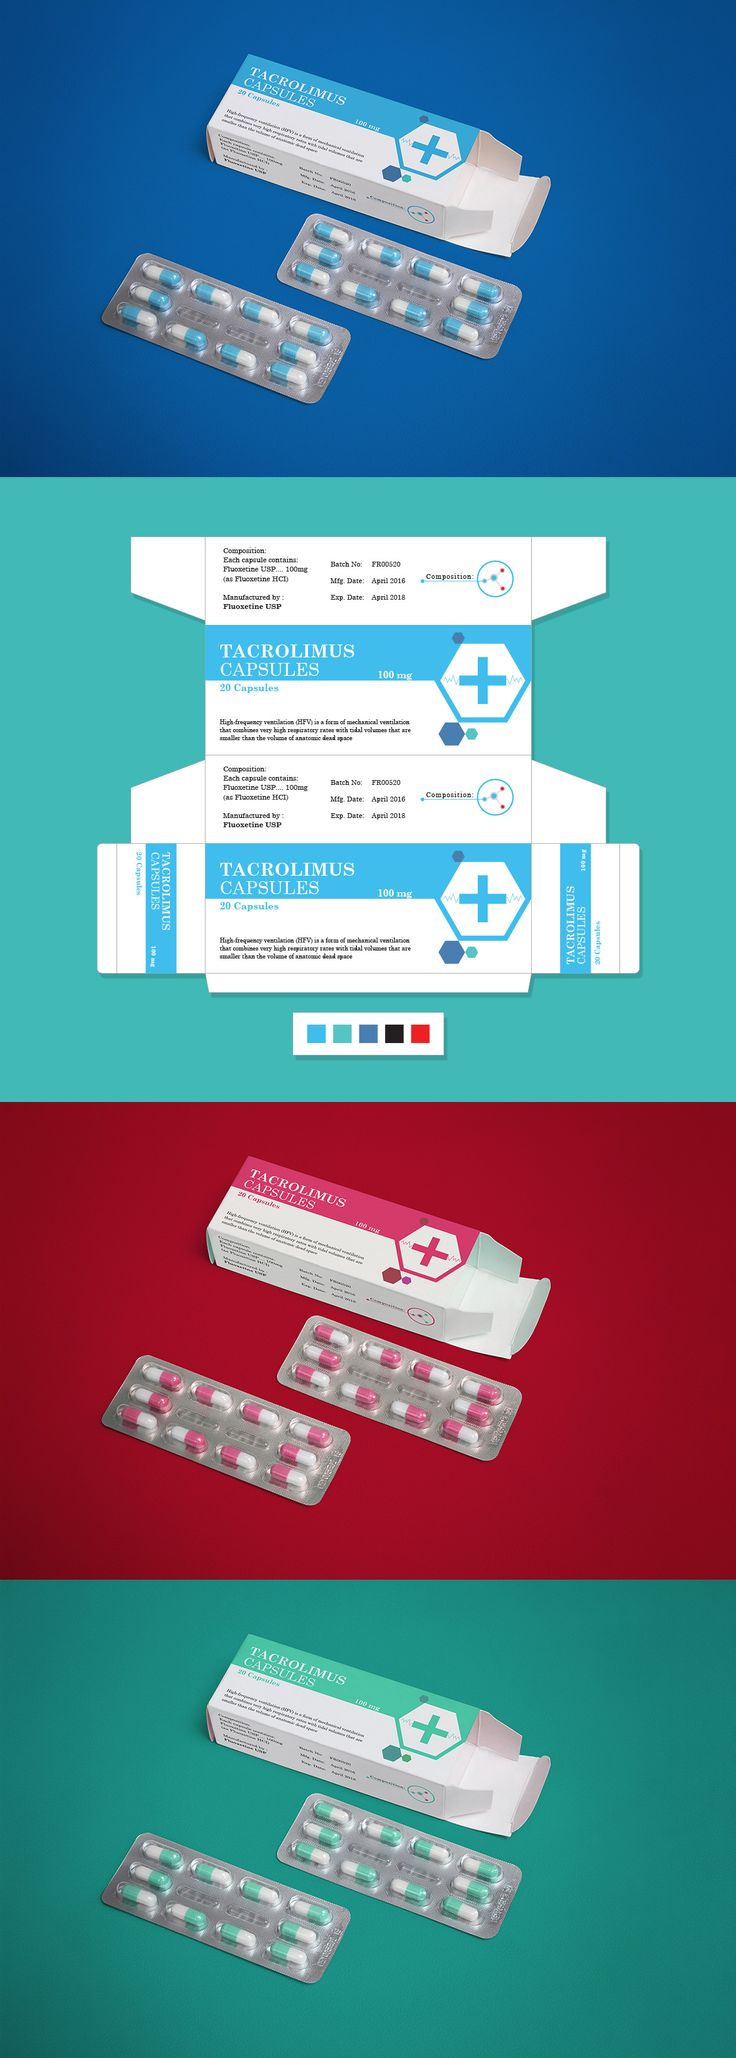 Pharmaceutical Medicine Packaging Design & Mock-Up PSD